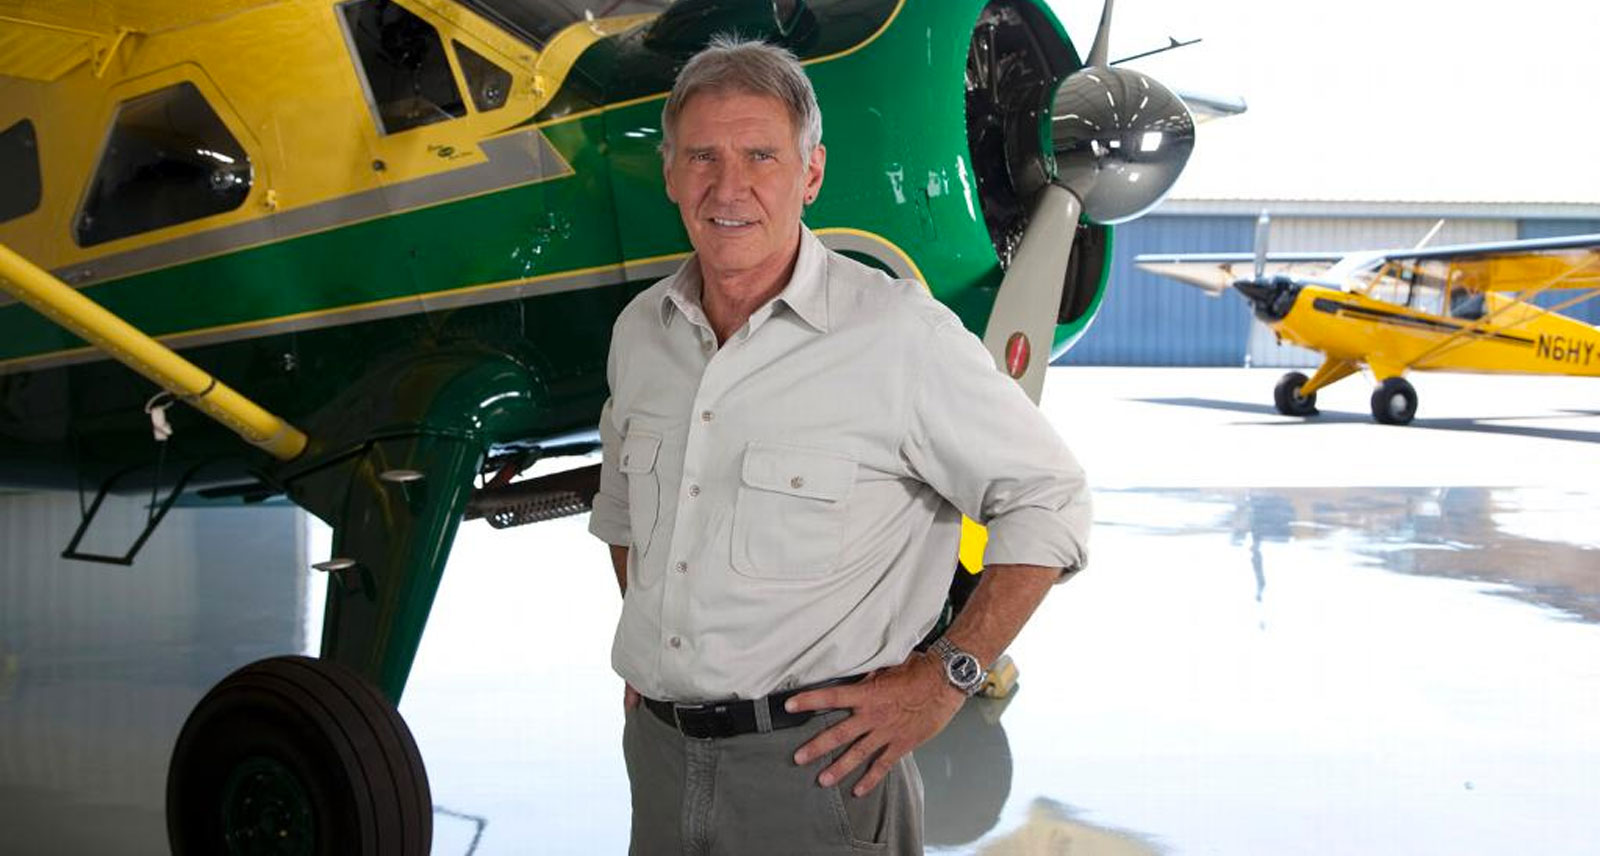 Harrison Ford next to his plane